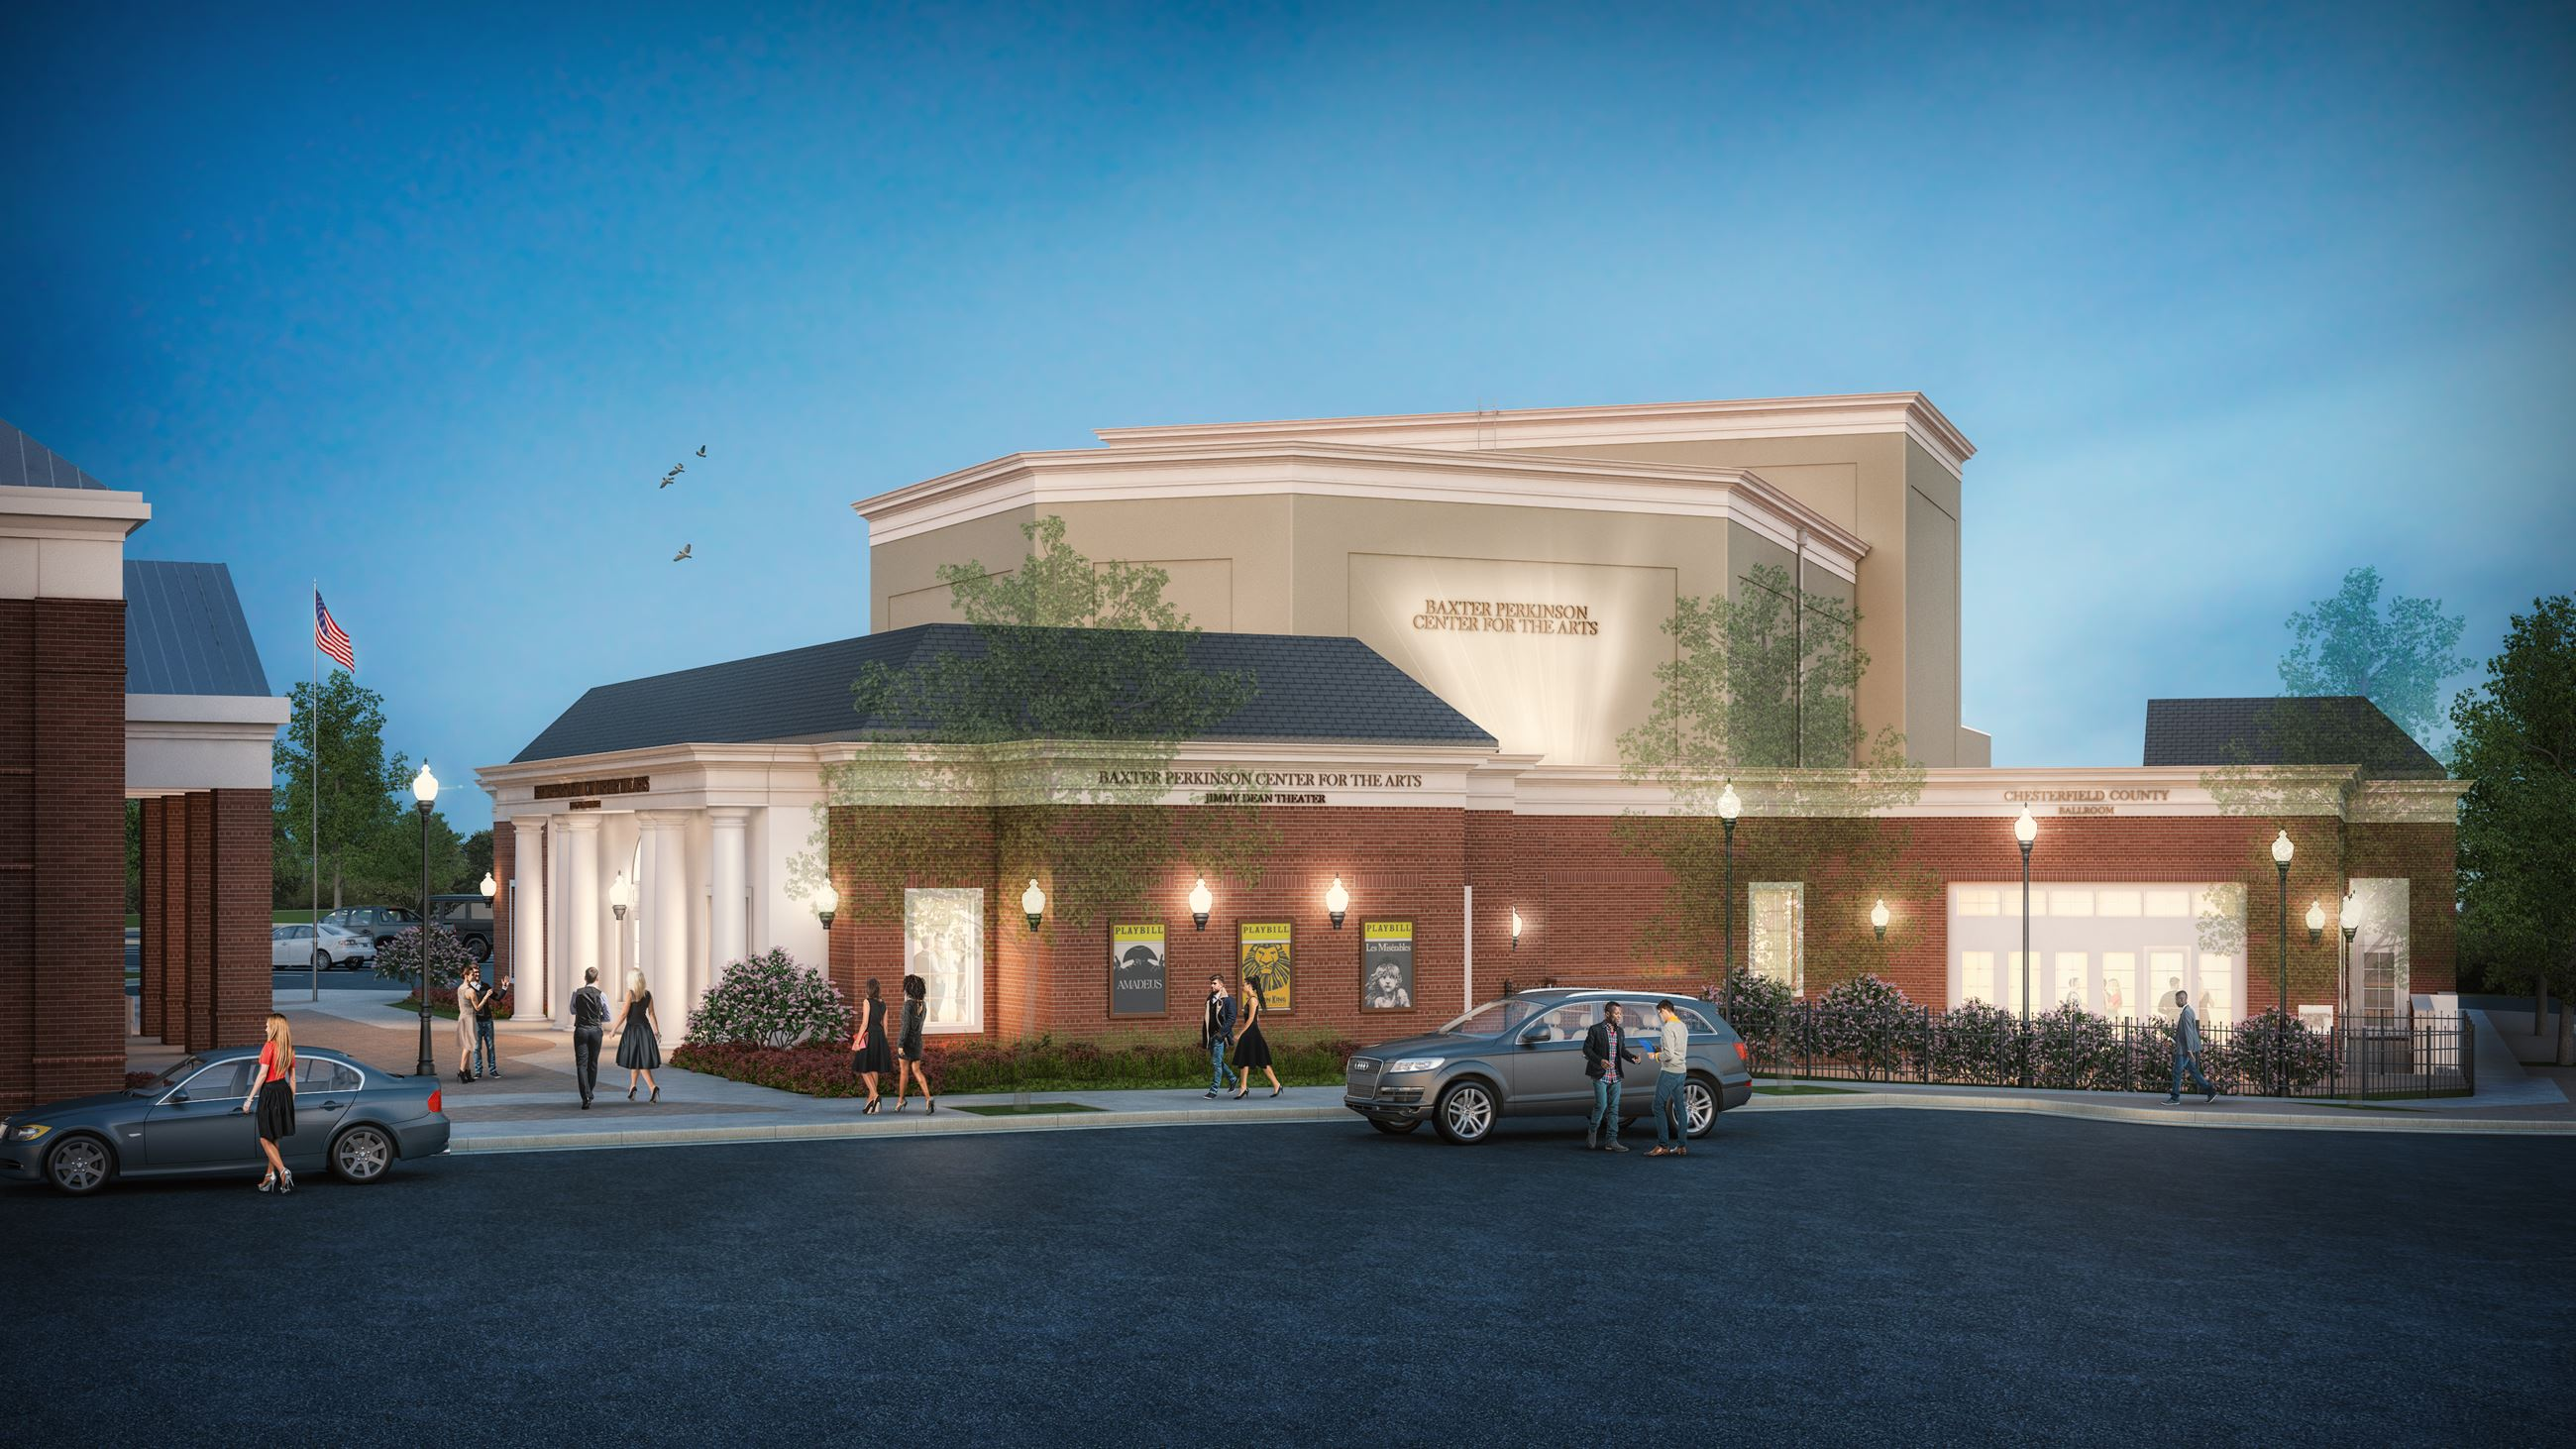 Chesterfield Center for the Arts External rendering